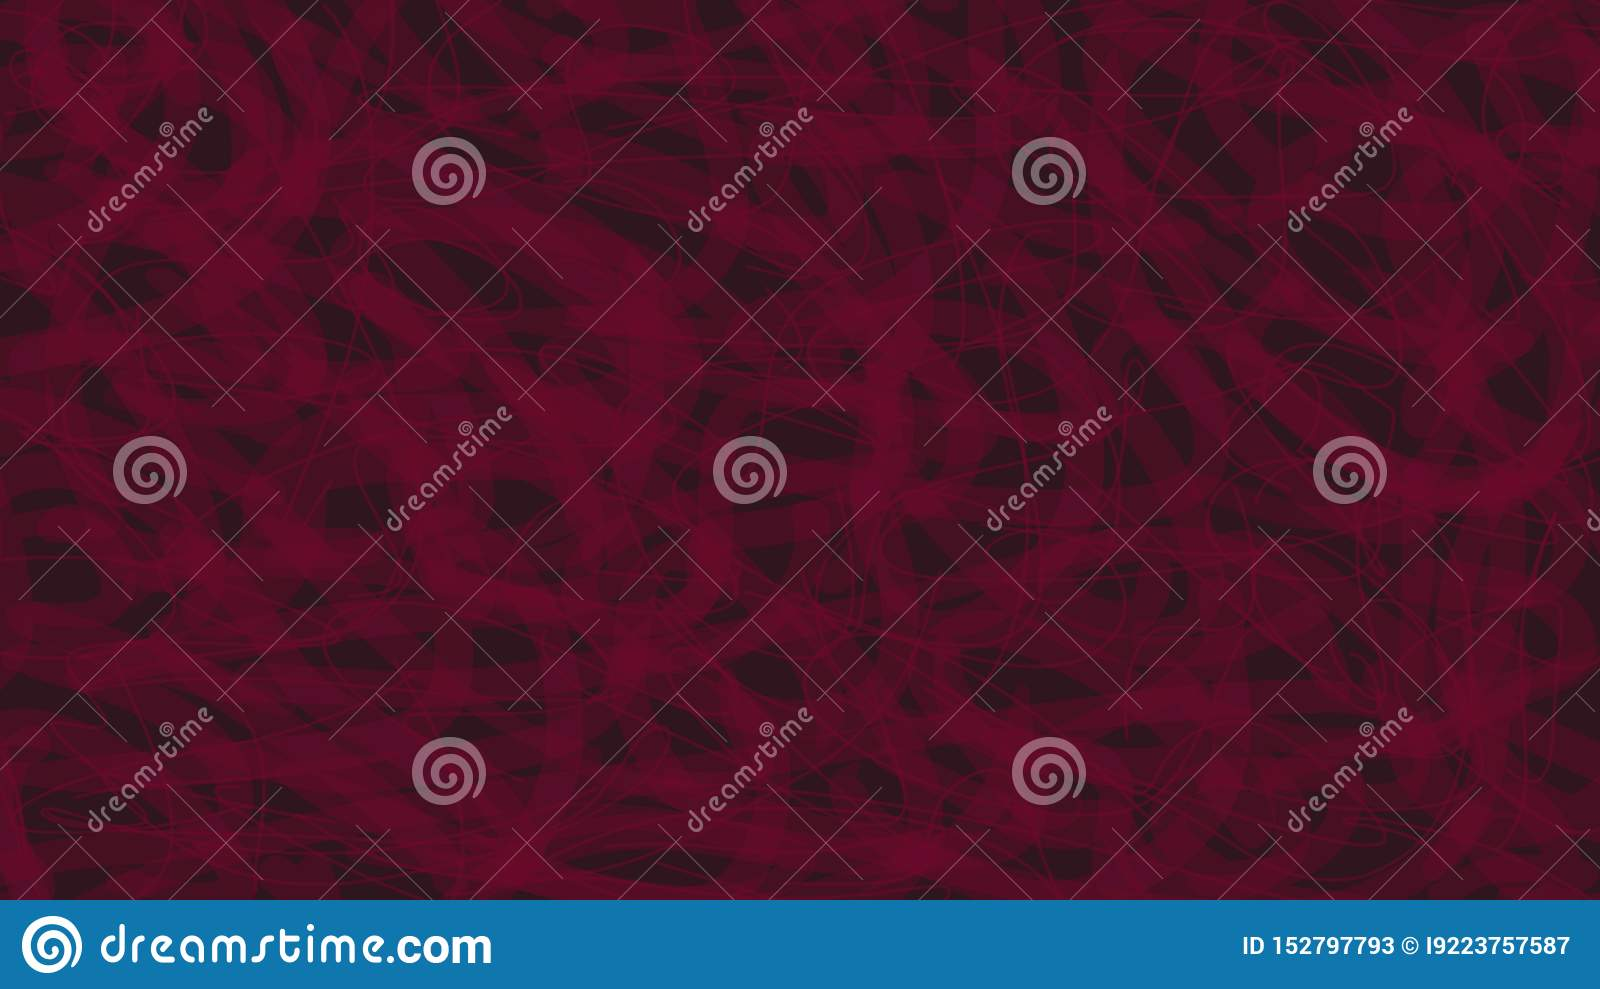 Dark crimson background with chaotic lines. Abstract background